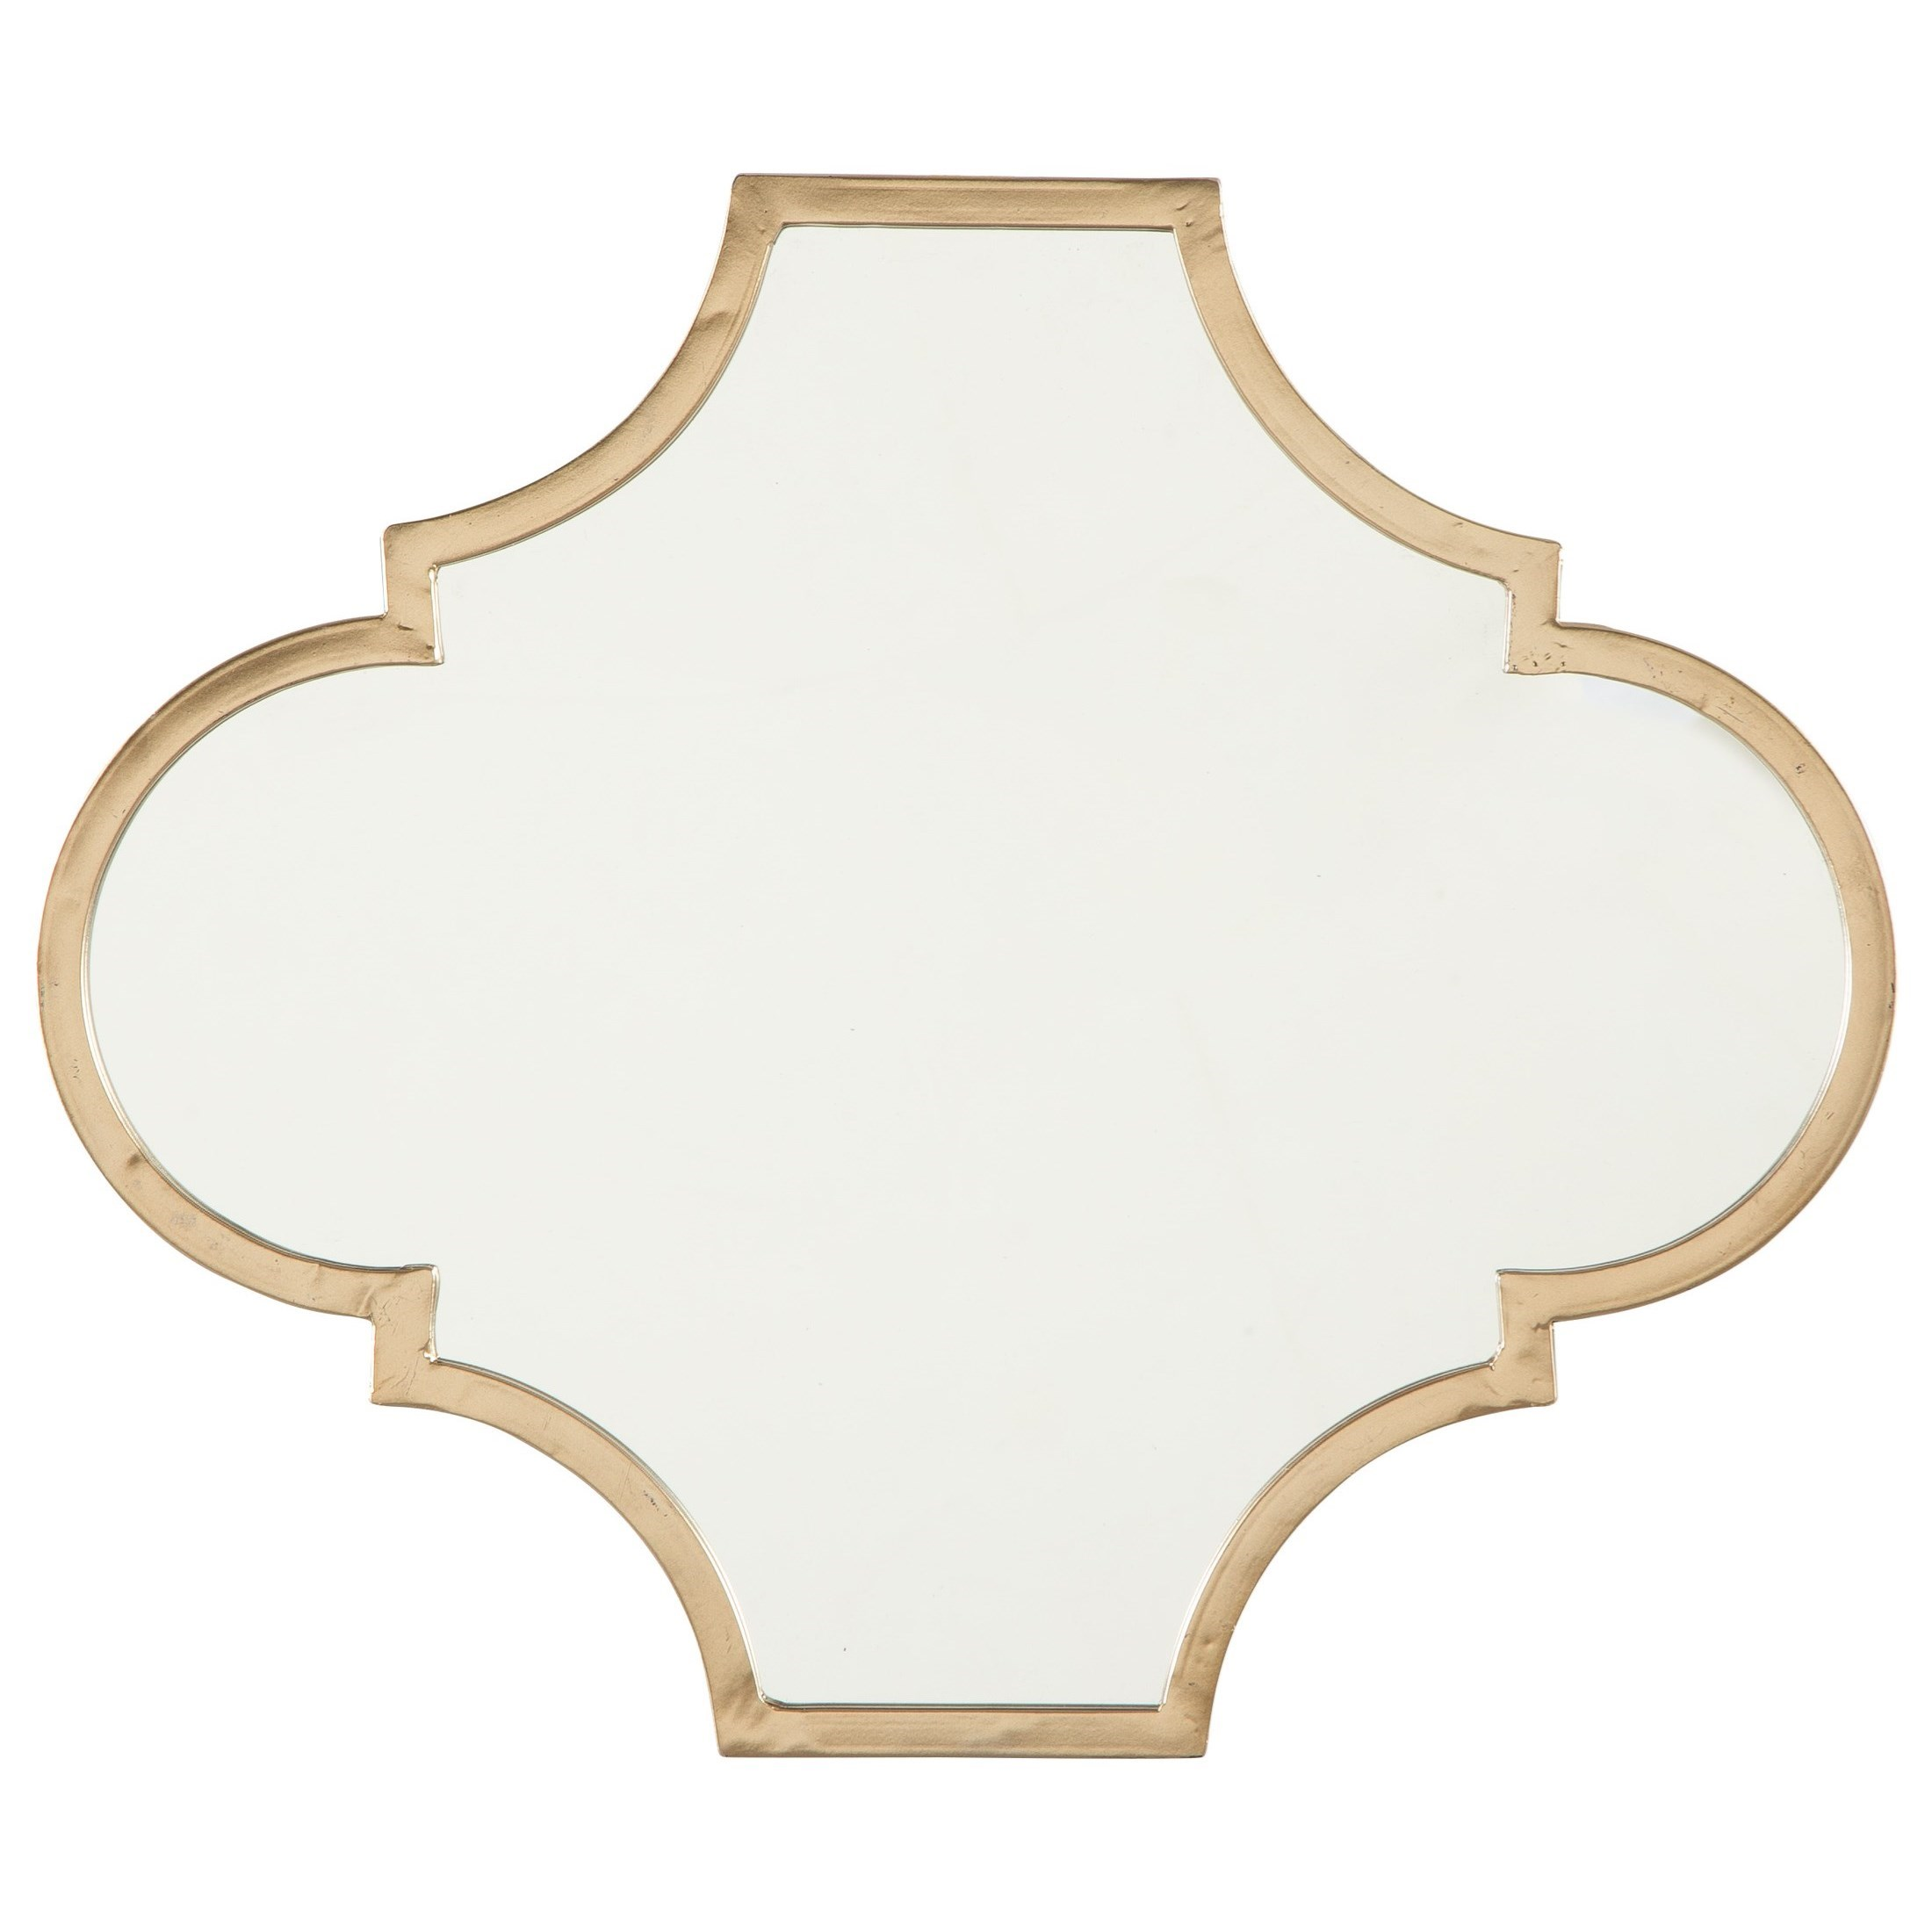 Accent Mirrors Callie Gold Finish Accent Mirror by Signature Design by Ashley at Rife's Home Furniture